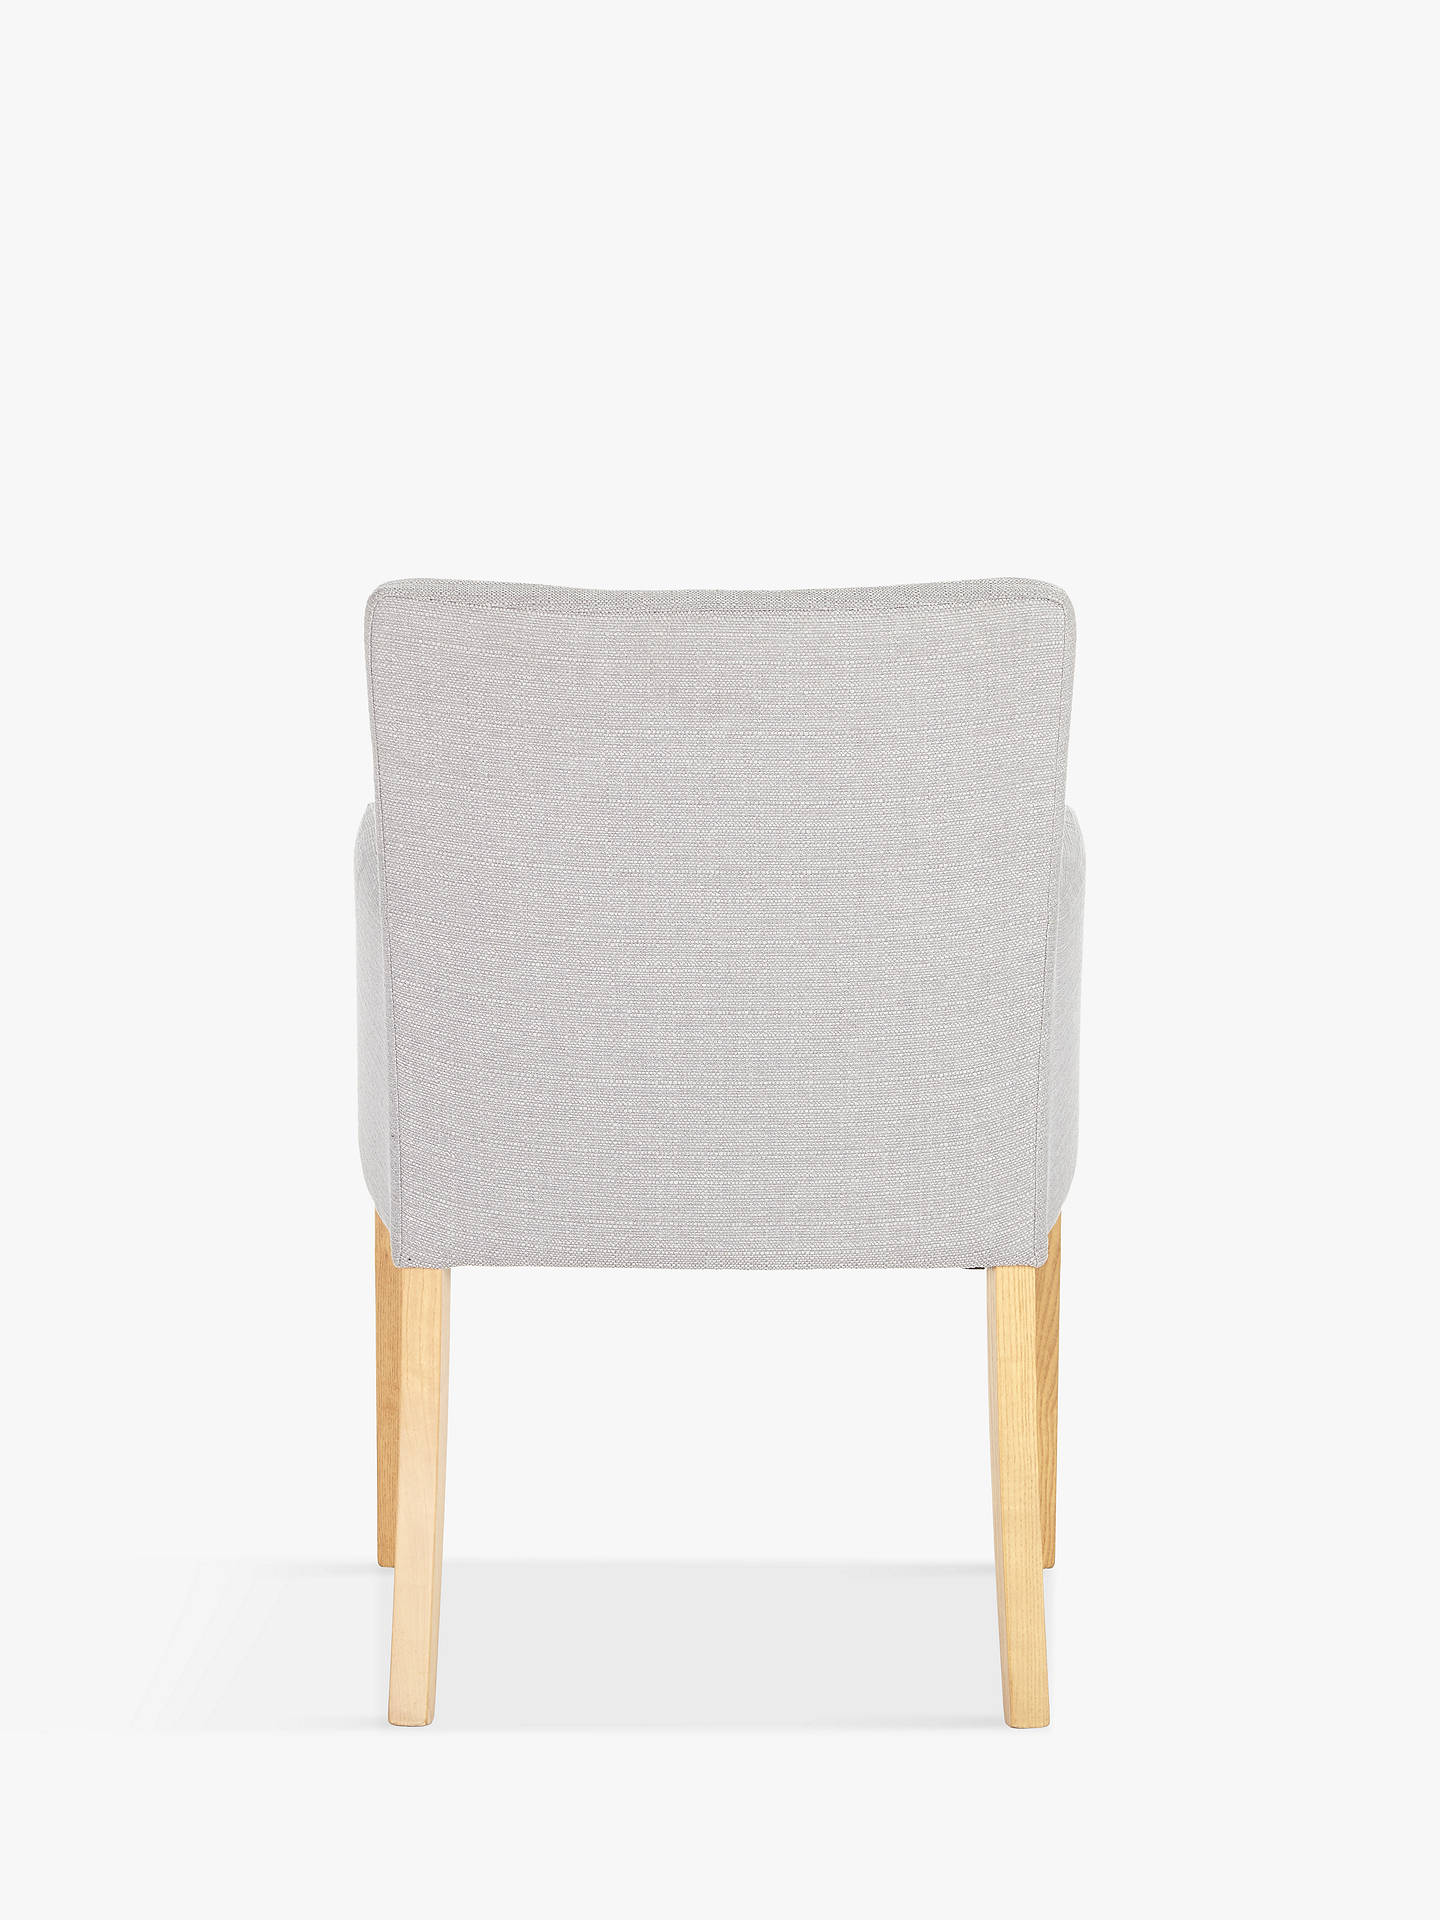 BuyJohn Lewis & Partners Helene Dining Chair, Glacia Grey Online at johnlewis.com